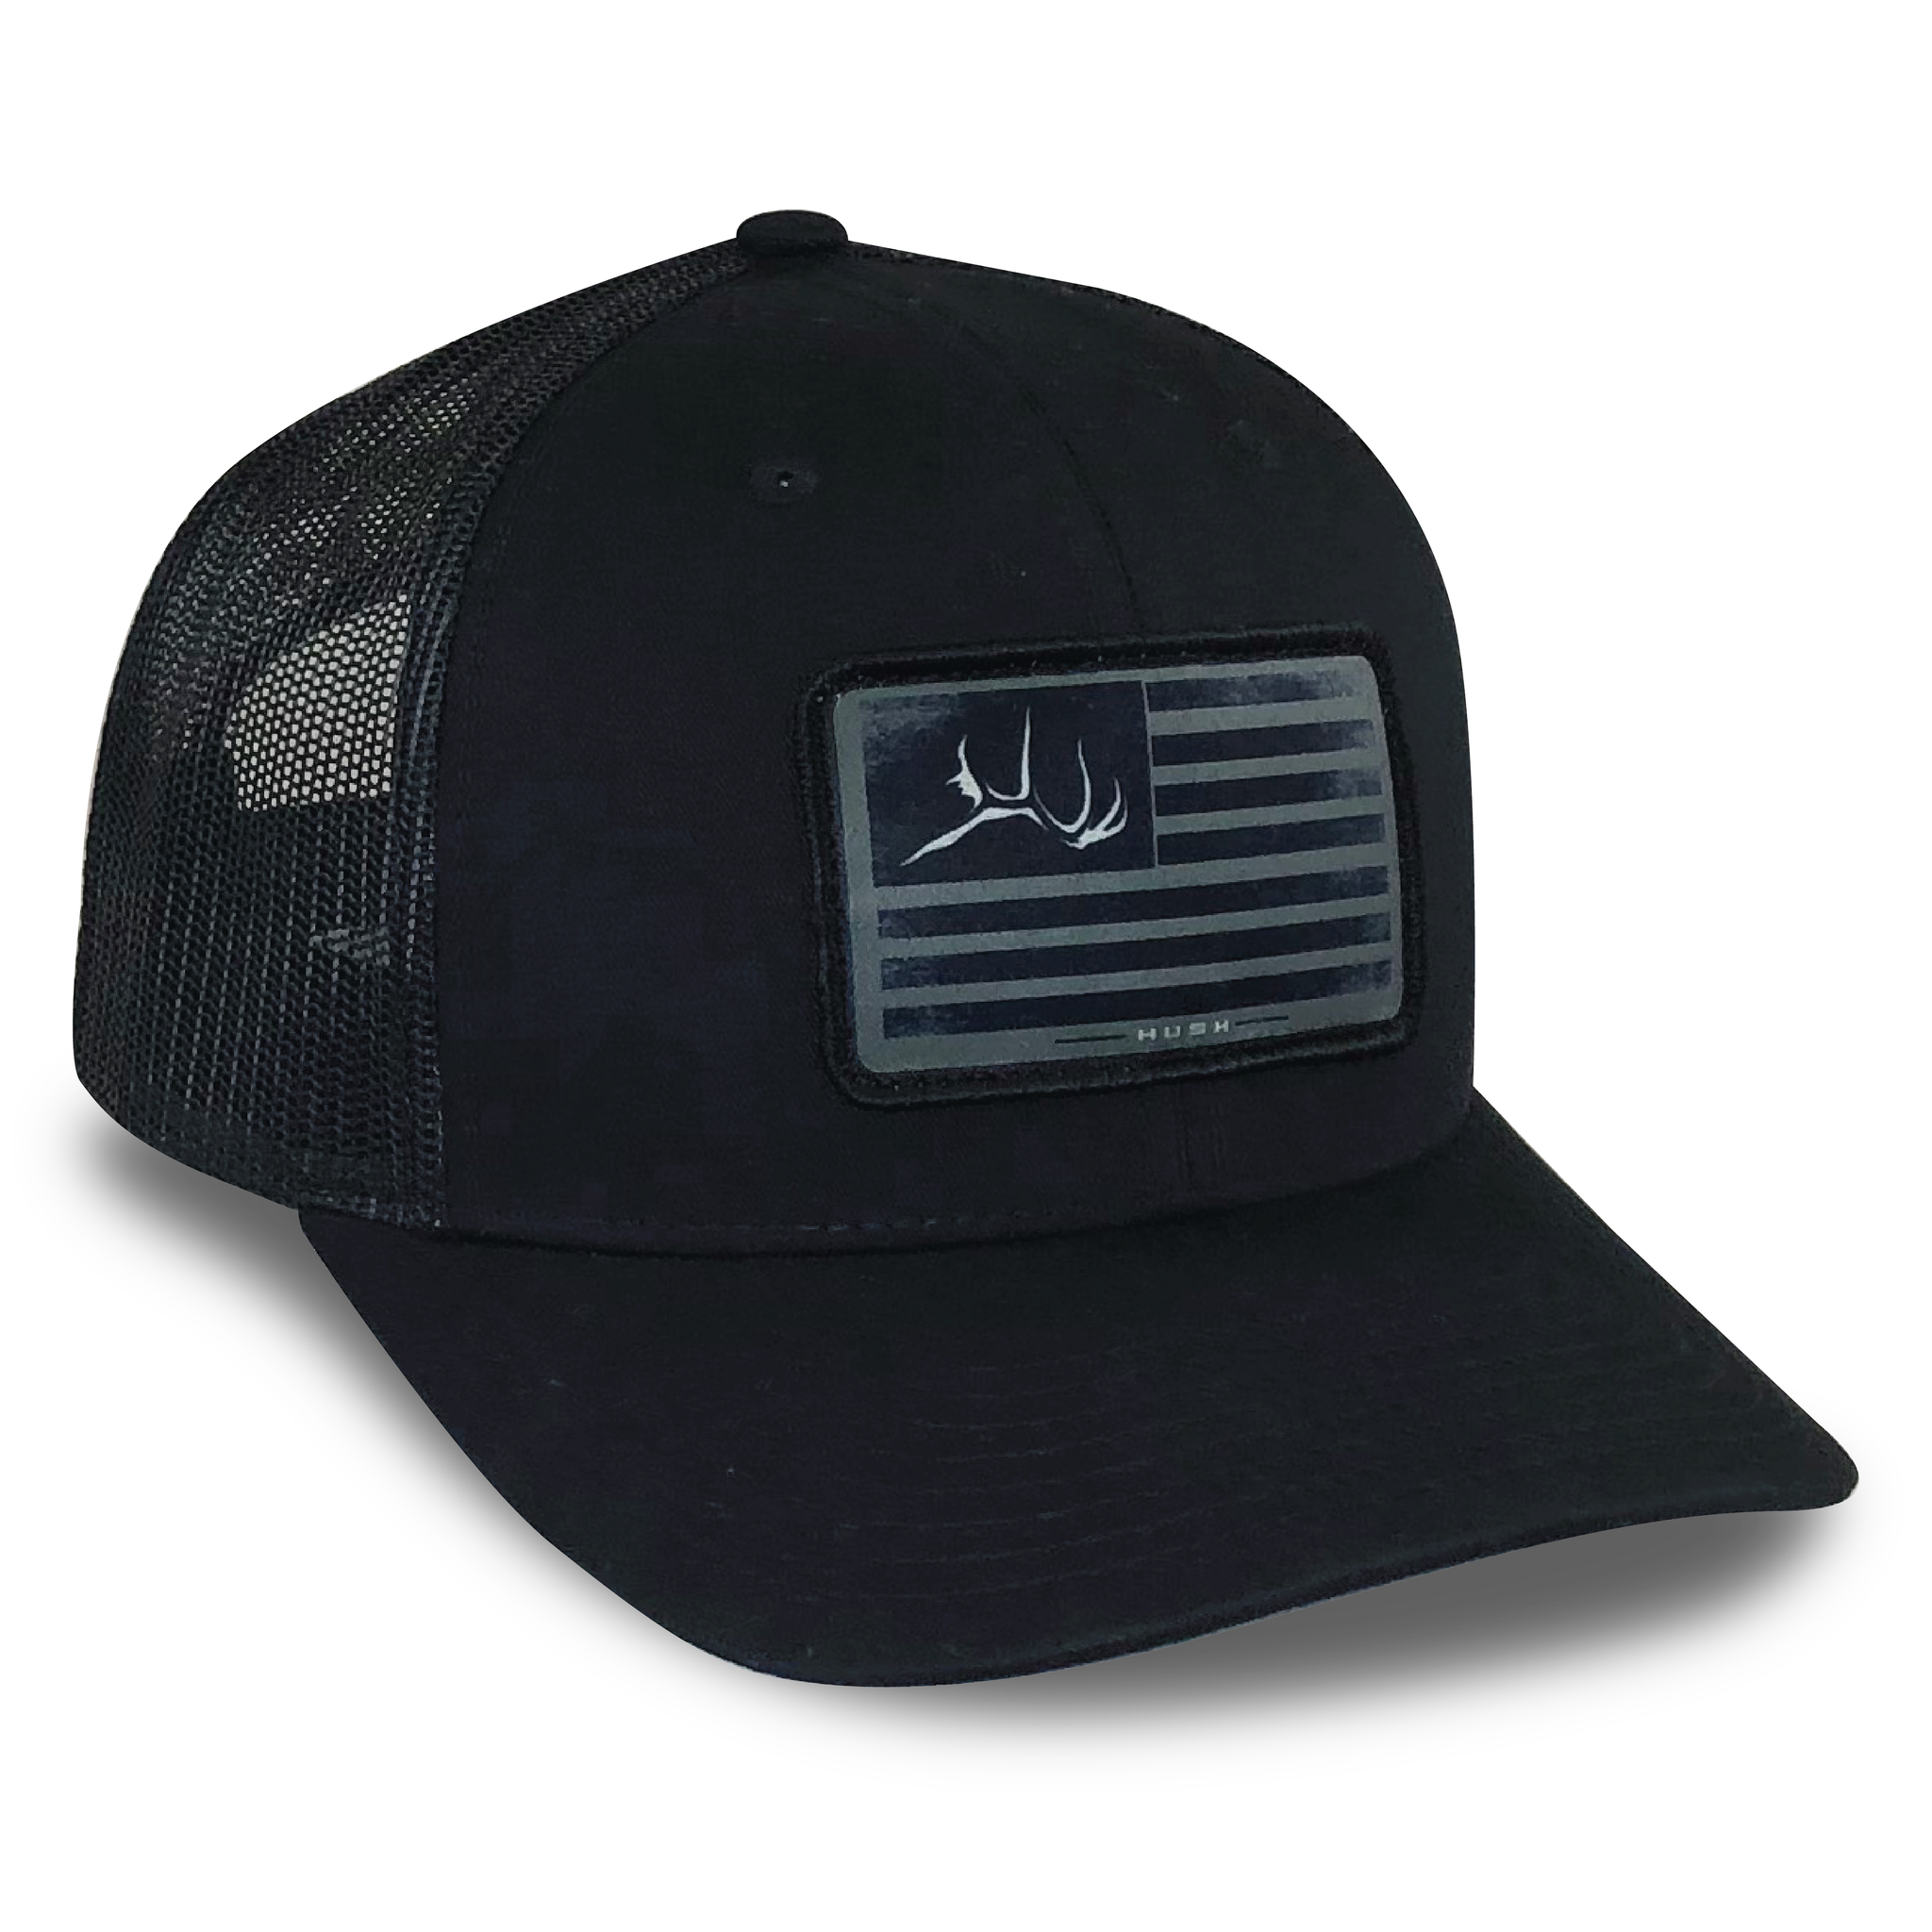 Black firebull flag hat